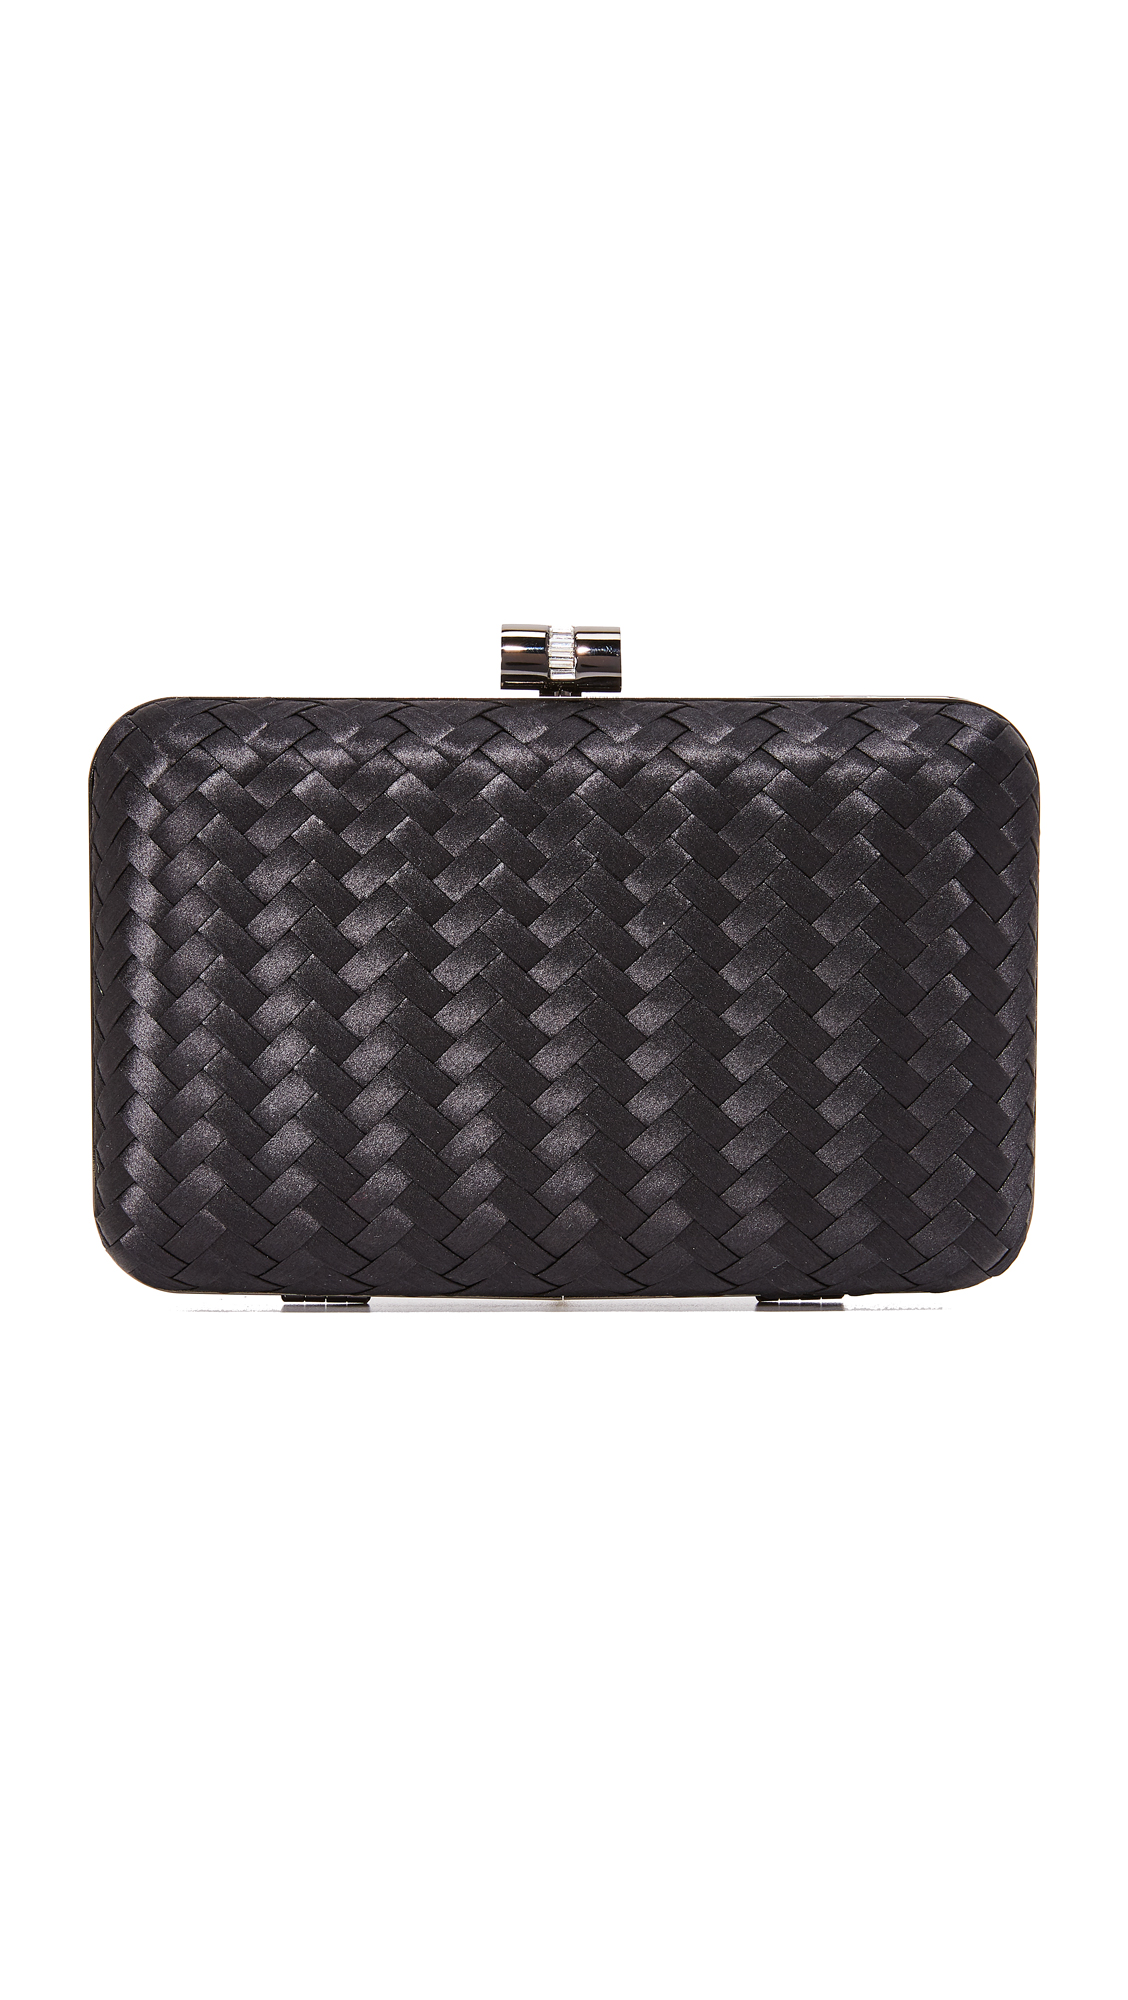 Inge Christopher Eliza Clutch - Black